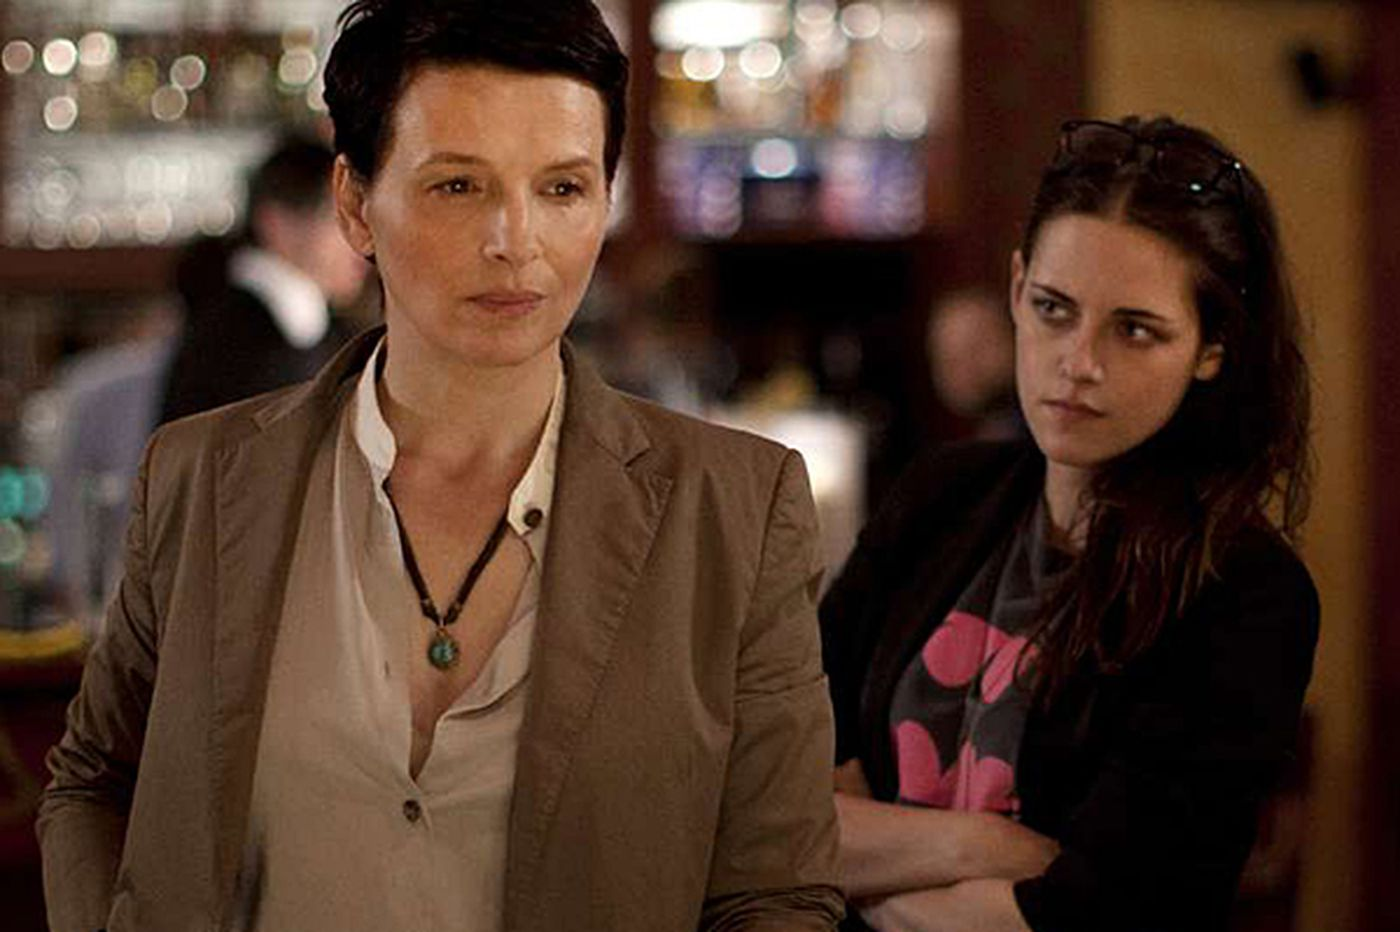 'Clouds of Sils Maria': An actress' angst over time passing, amid beautiful scenery